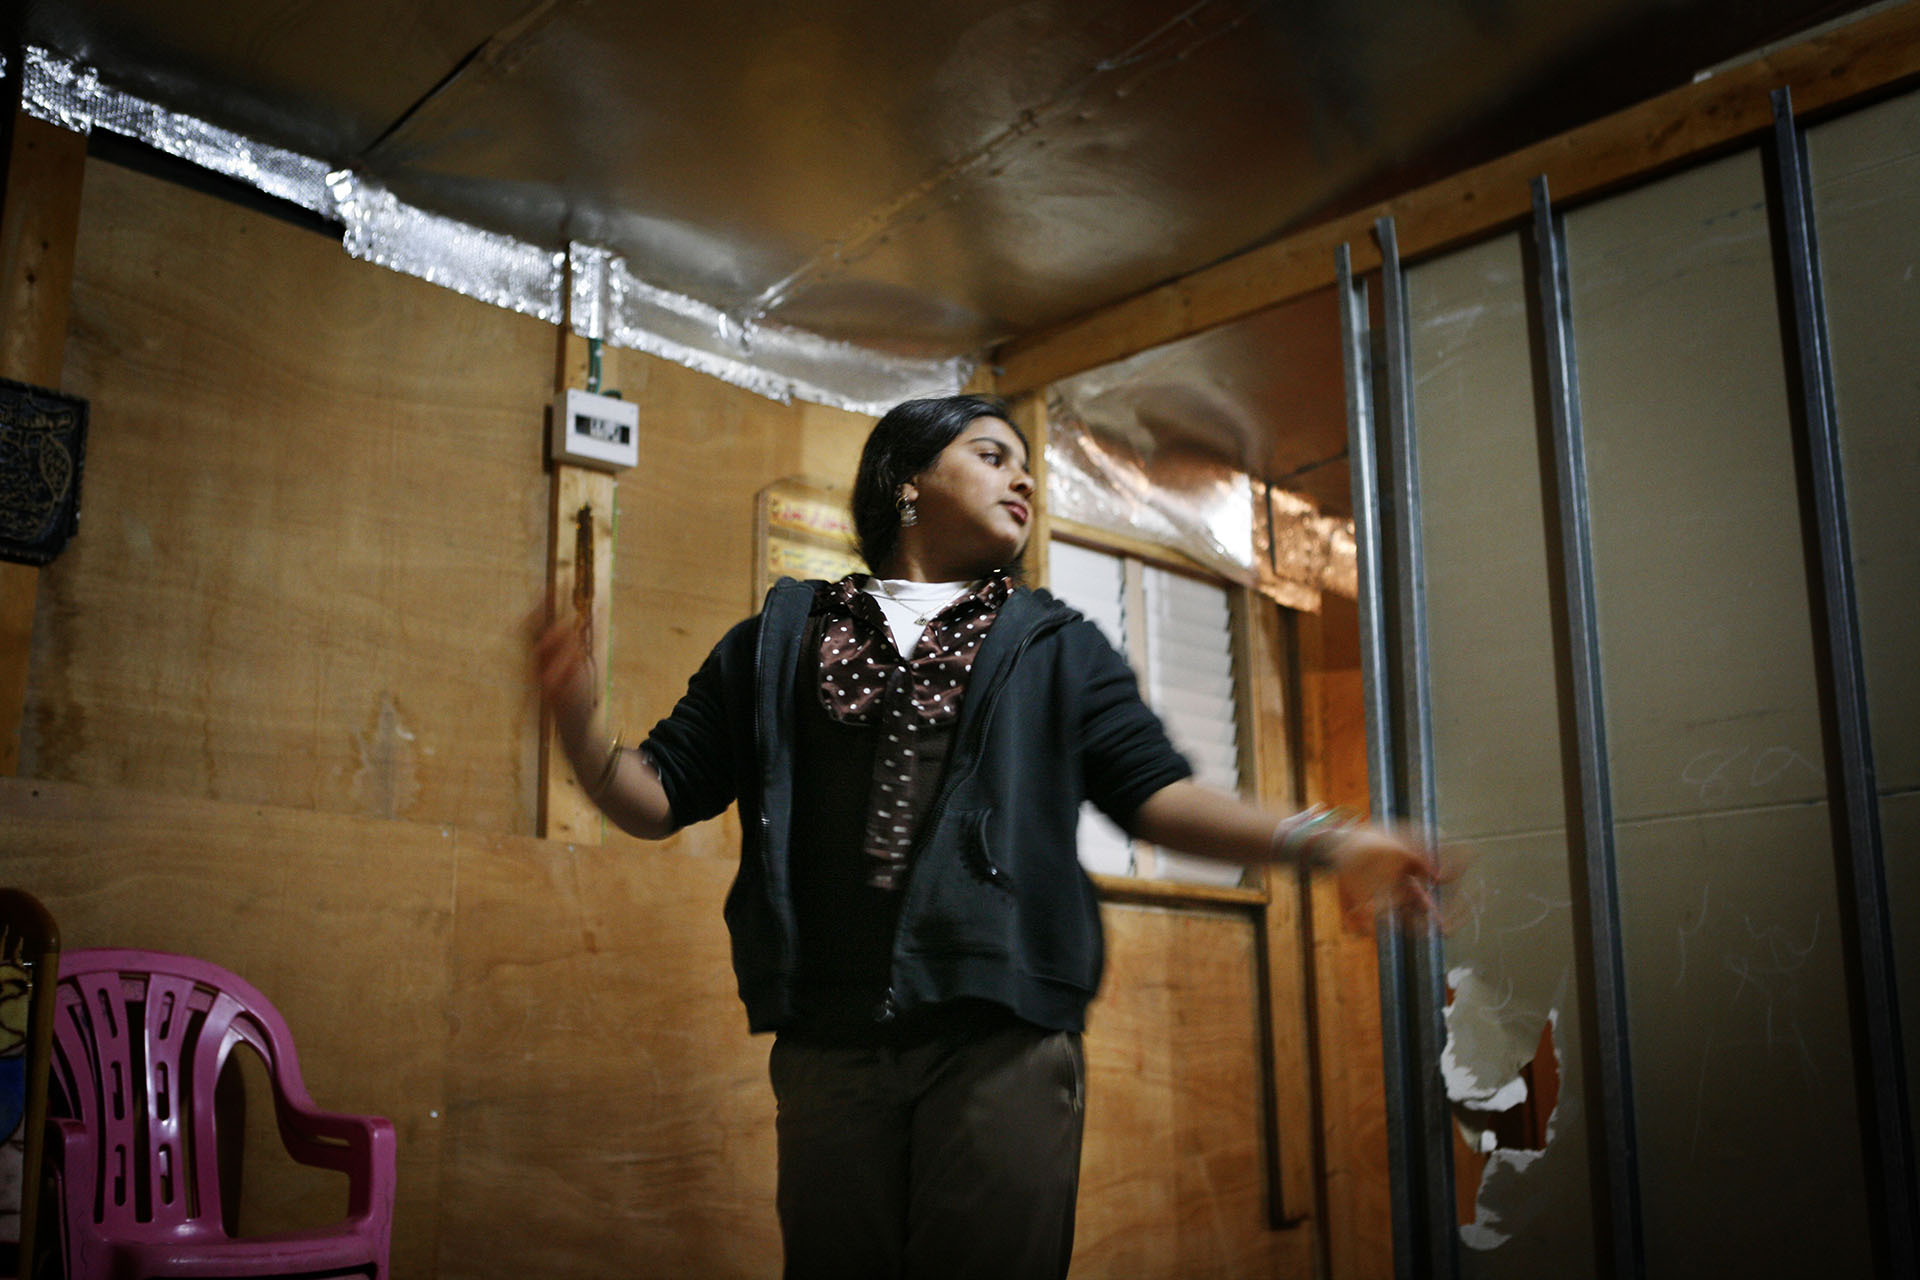 Fatima Abu Madegham Al Turi dances in her home. Al Araqib, February 2010